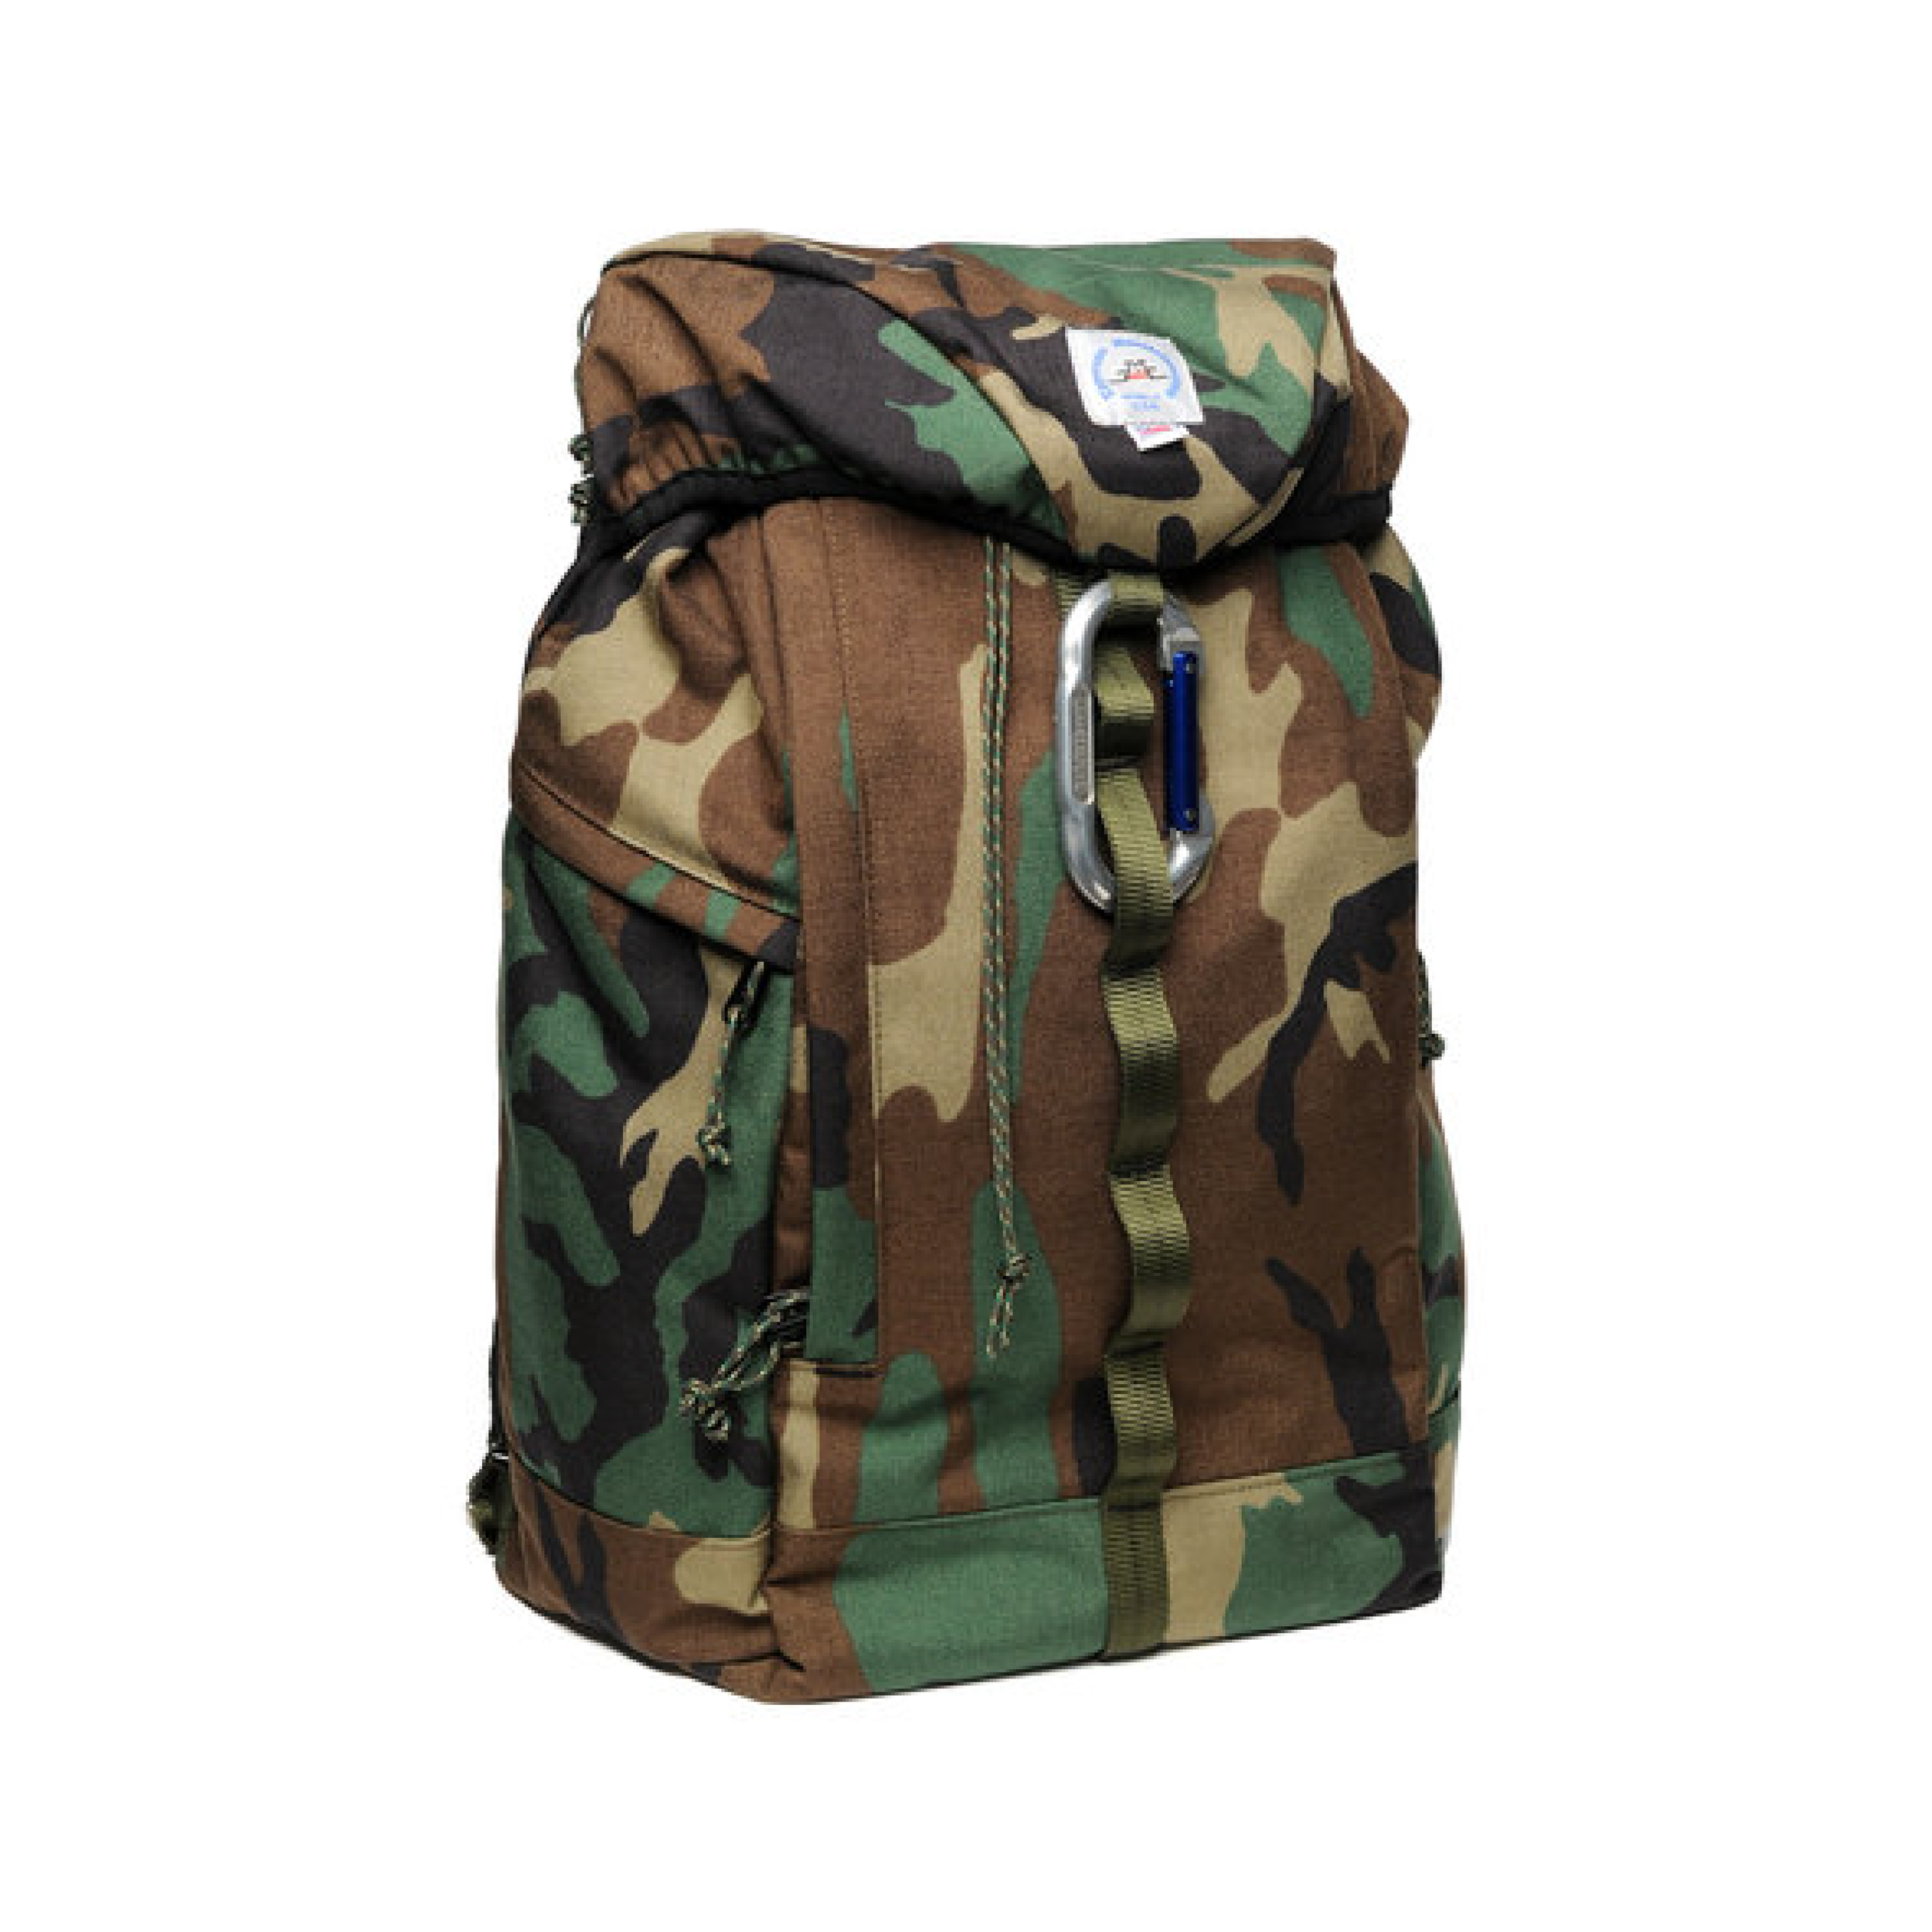 LARGE CLIMB PACK (CAMO)    By  Epperson Mountaineering     A rugged pack inspired by climbers with enough pockets and webbing loops to carry all your gear, plus more.    SHOP NOW          £140